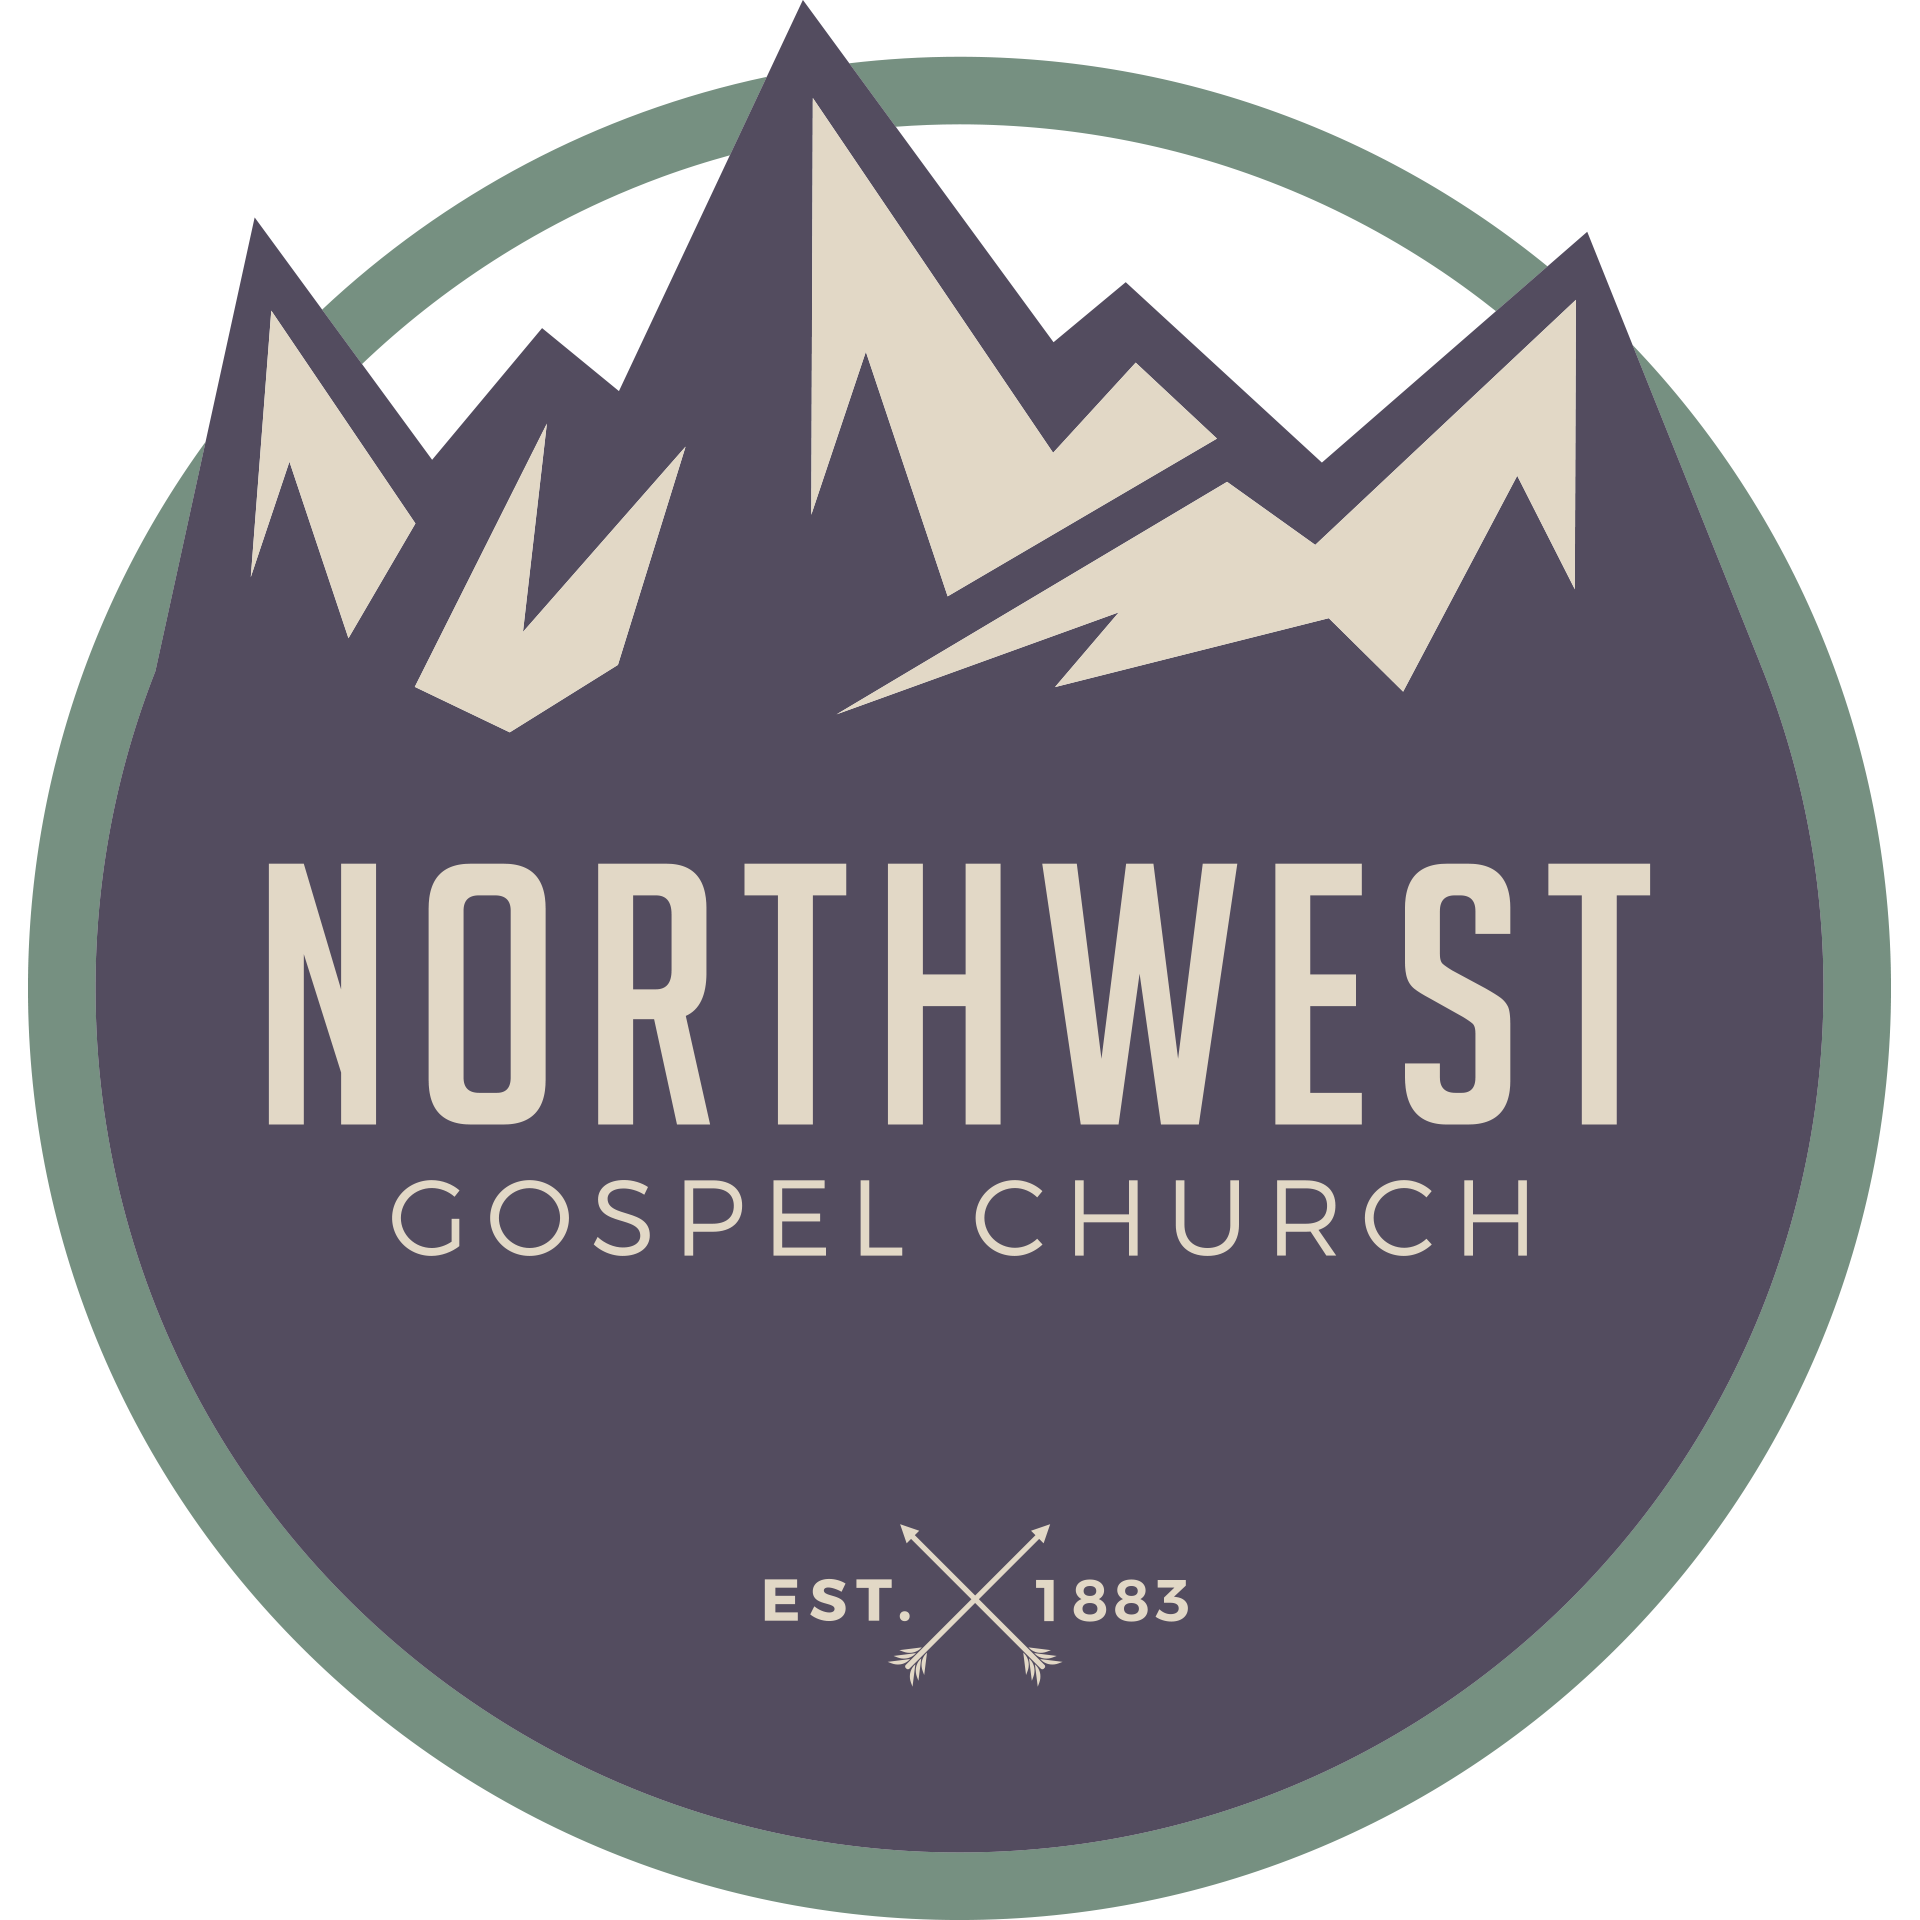 Camas/Washougal Campus,  SERMON PODCAST  contains the weekly sermon preached at NGC. You can always expect our teaching team to preach expositional sermons based in a single text.